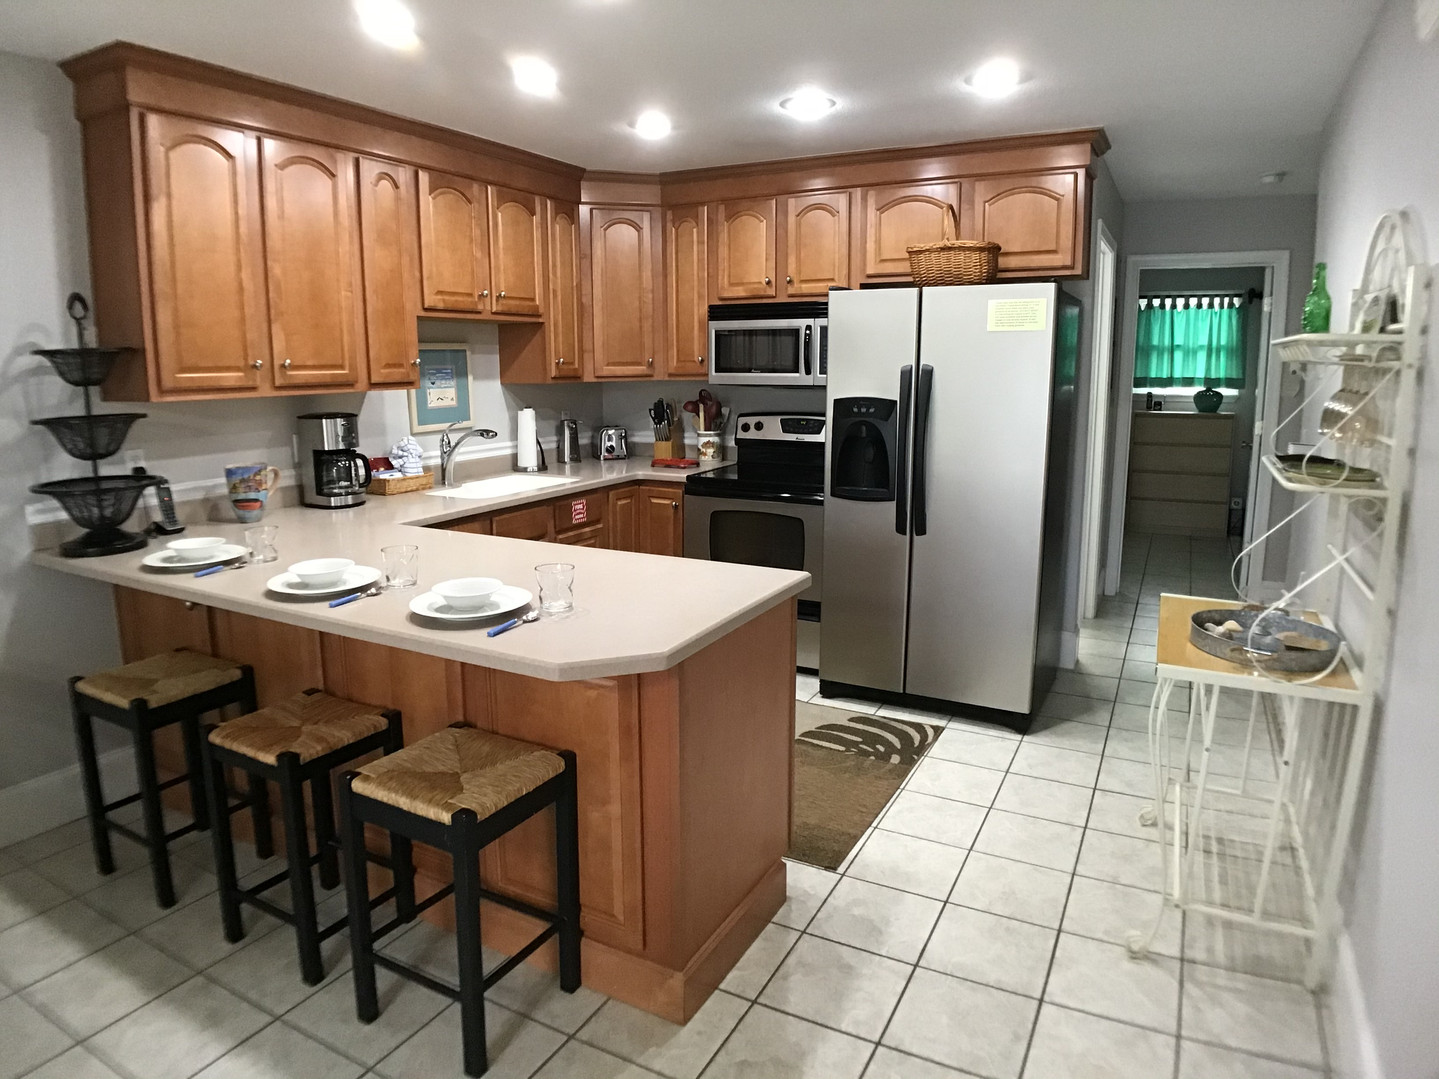 Well-stocked and updated kitchen